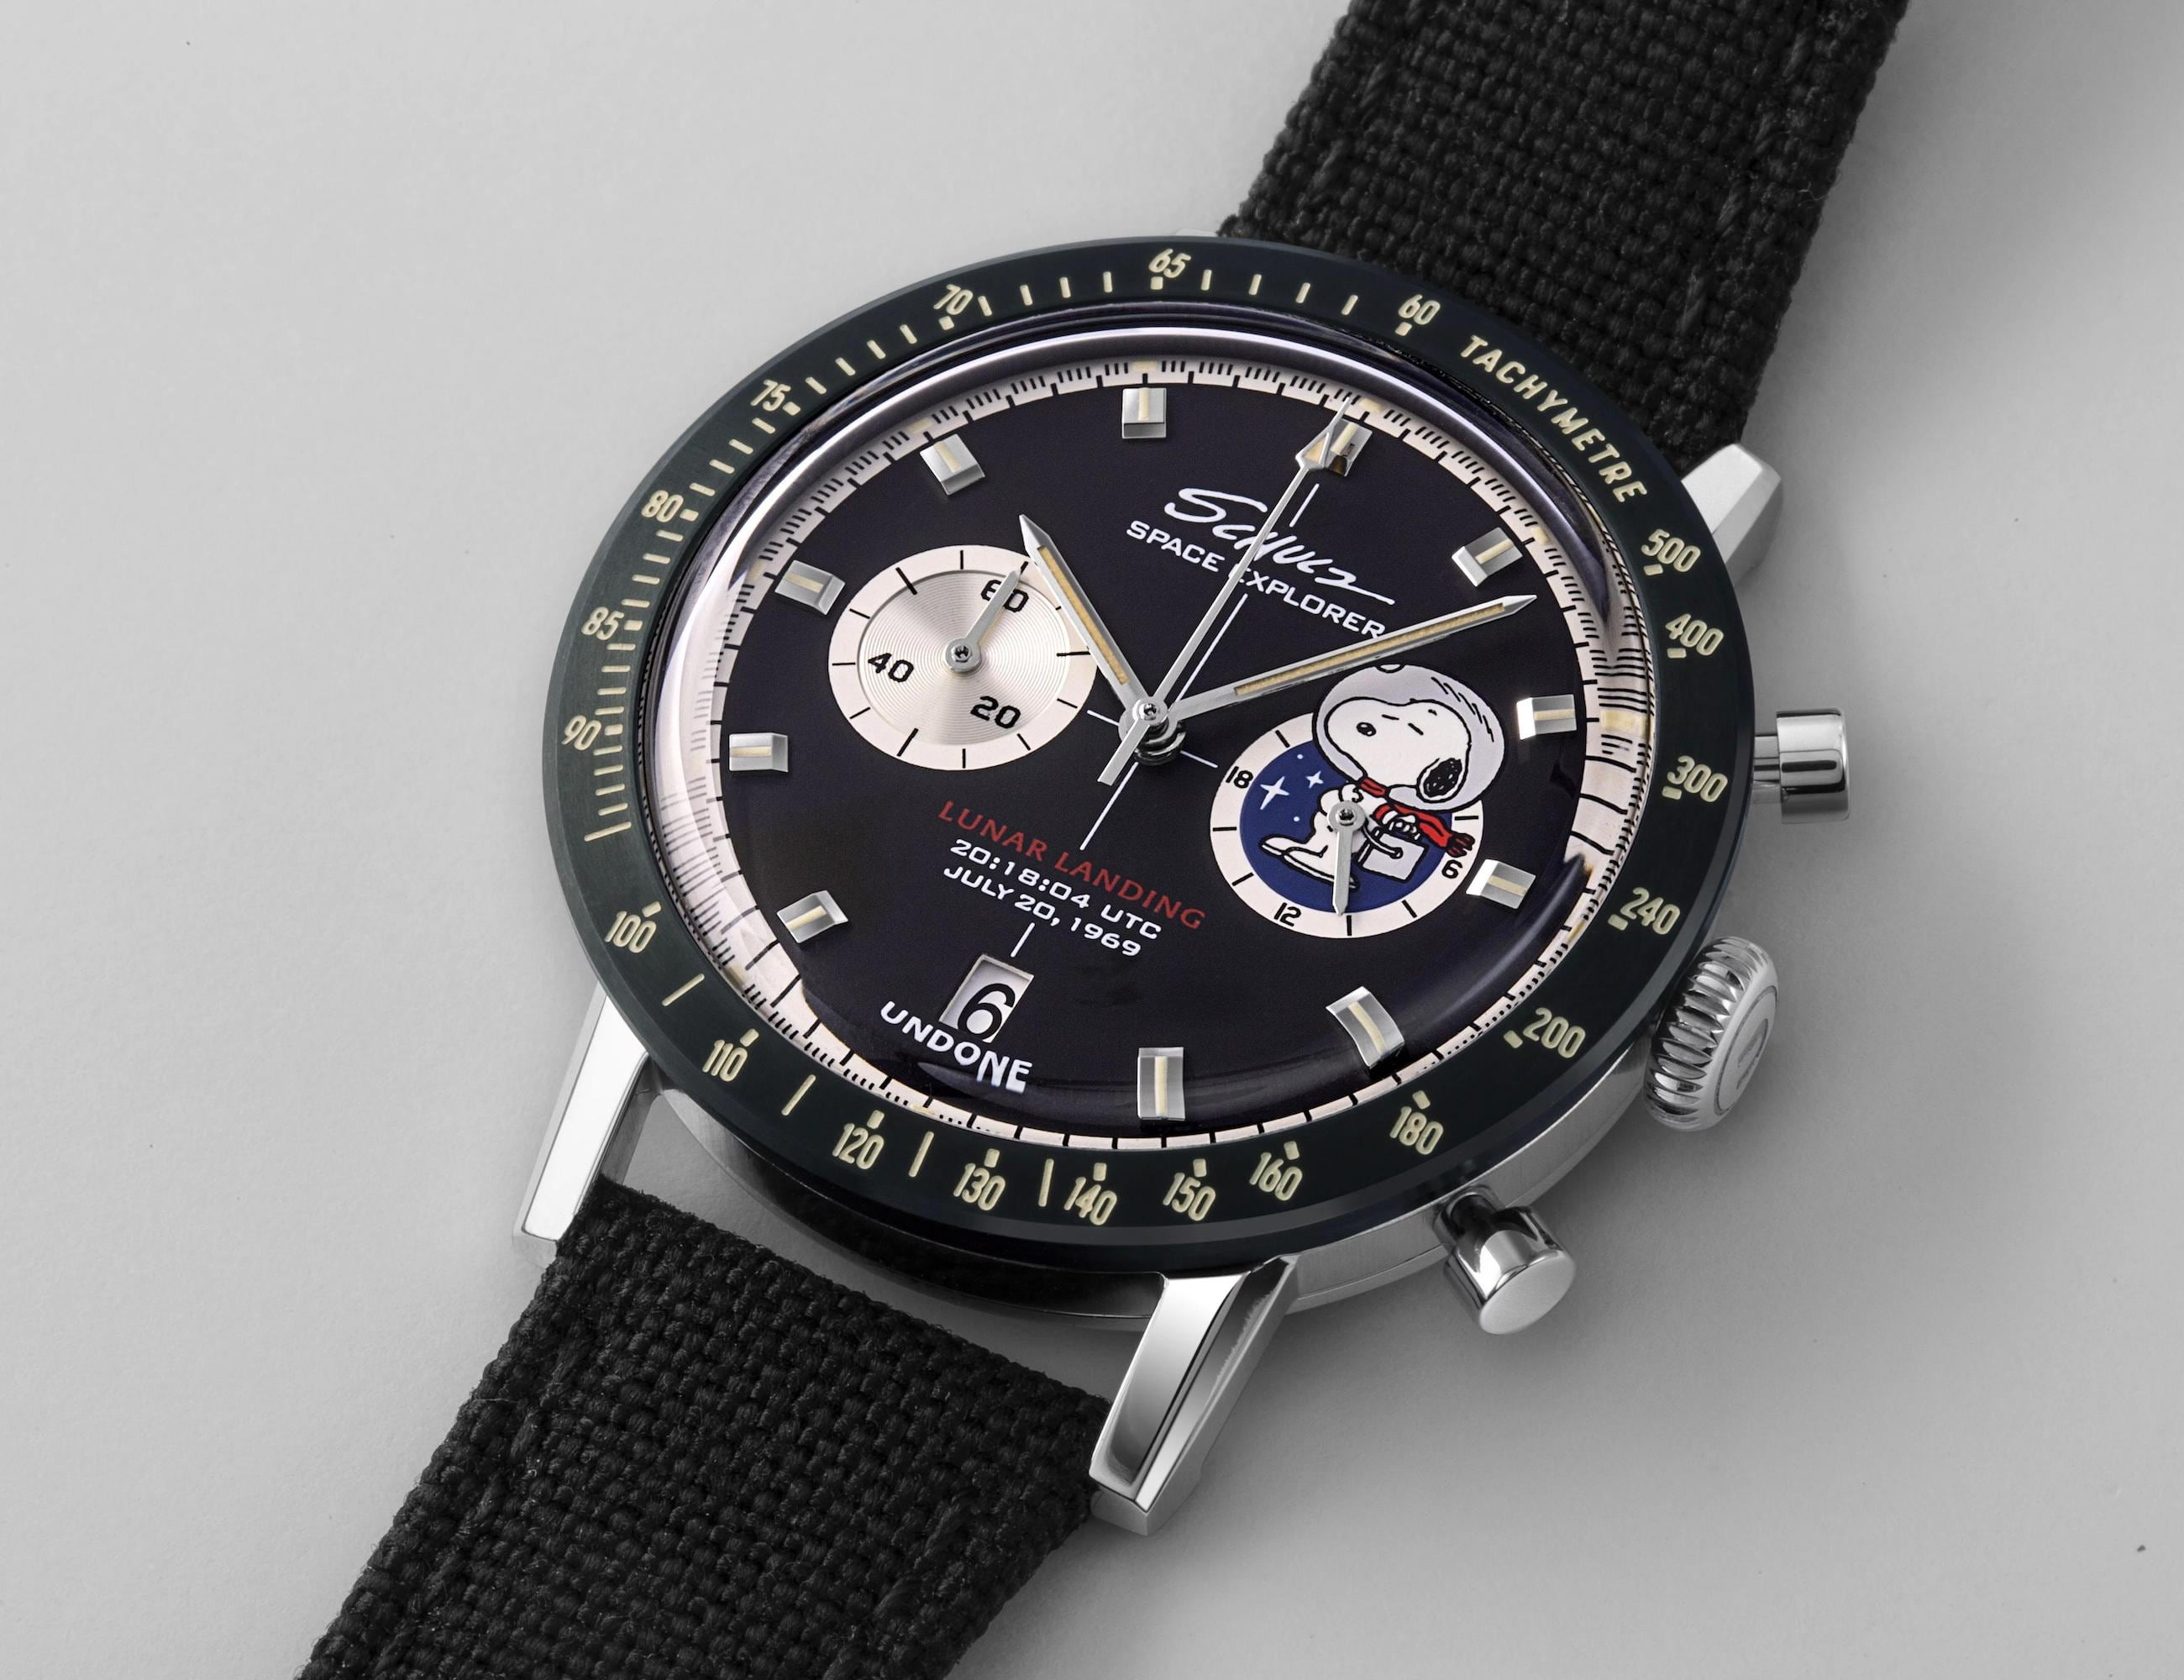 apollo 11 space mission watch - photo #4